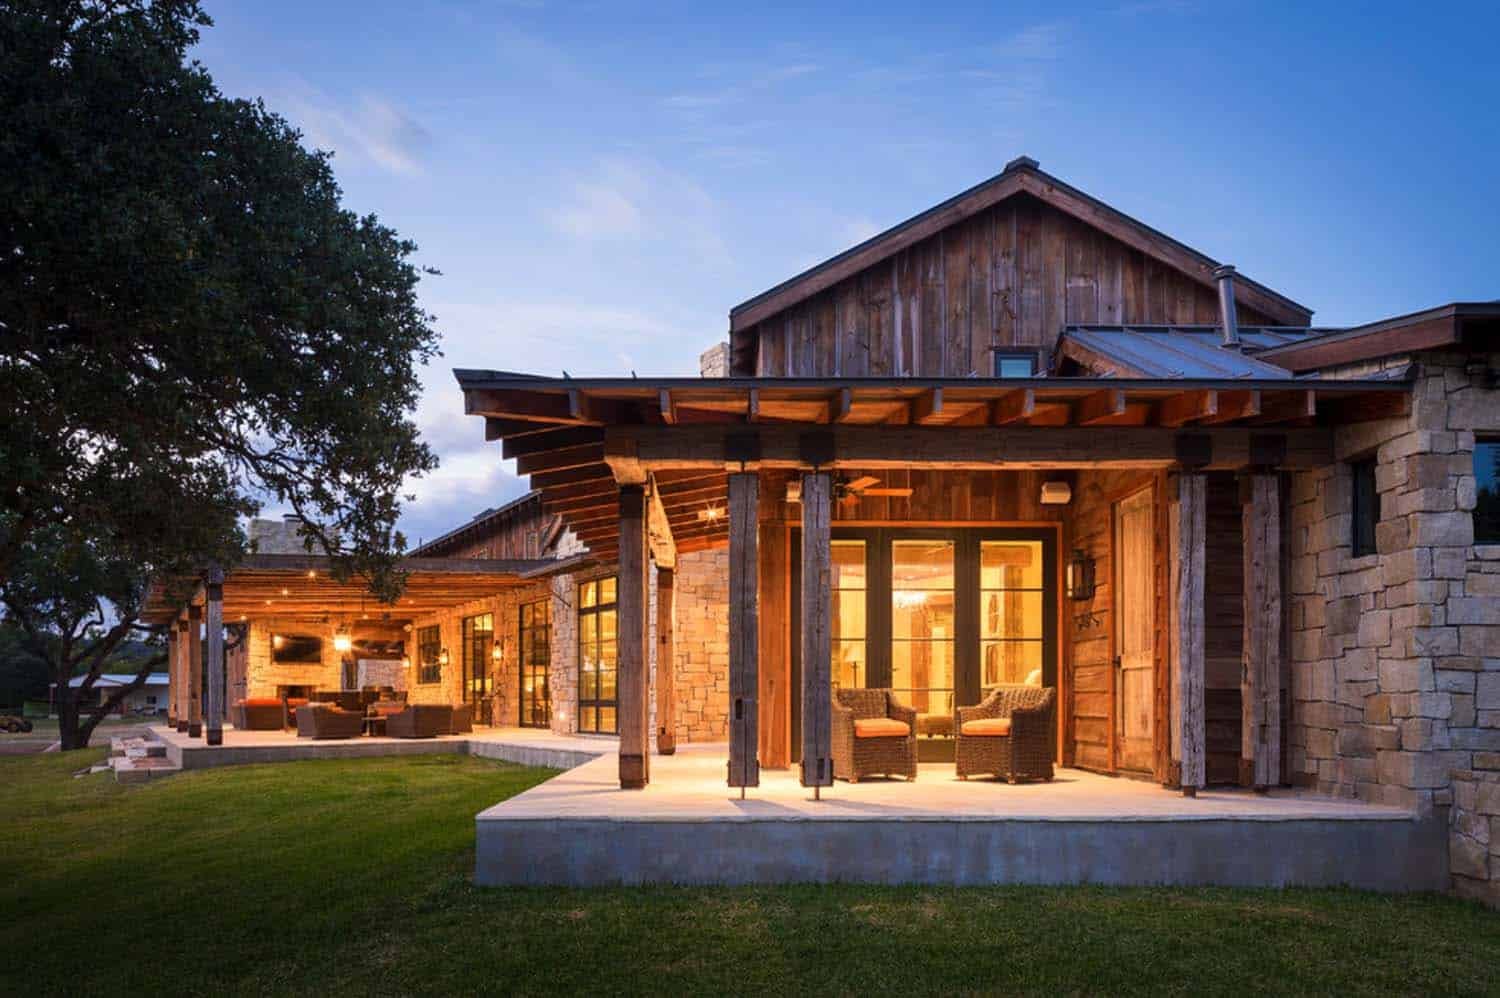 Modern rustic barn style retreat in texas hill country for Modern rustic farmhouse plans